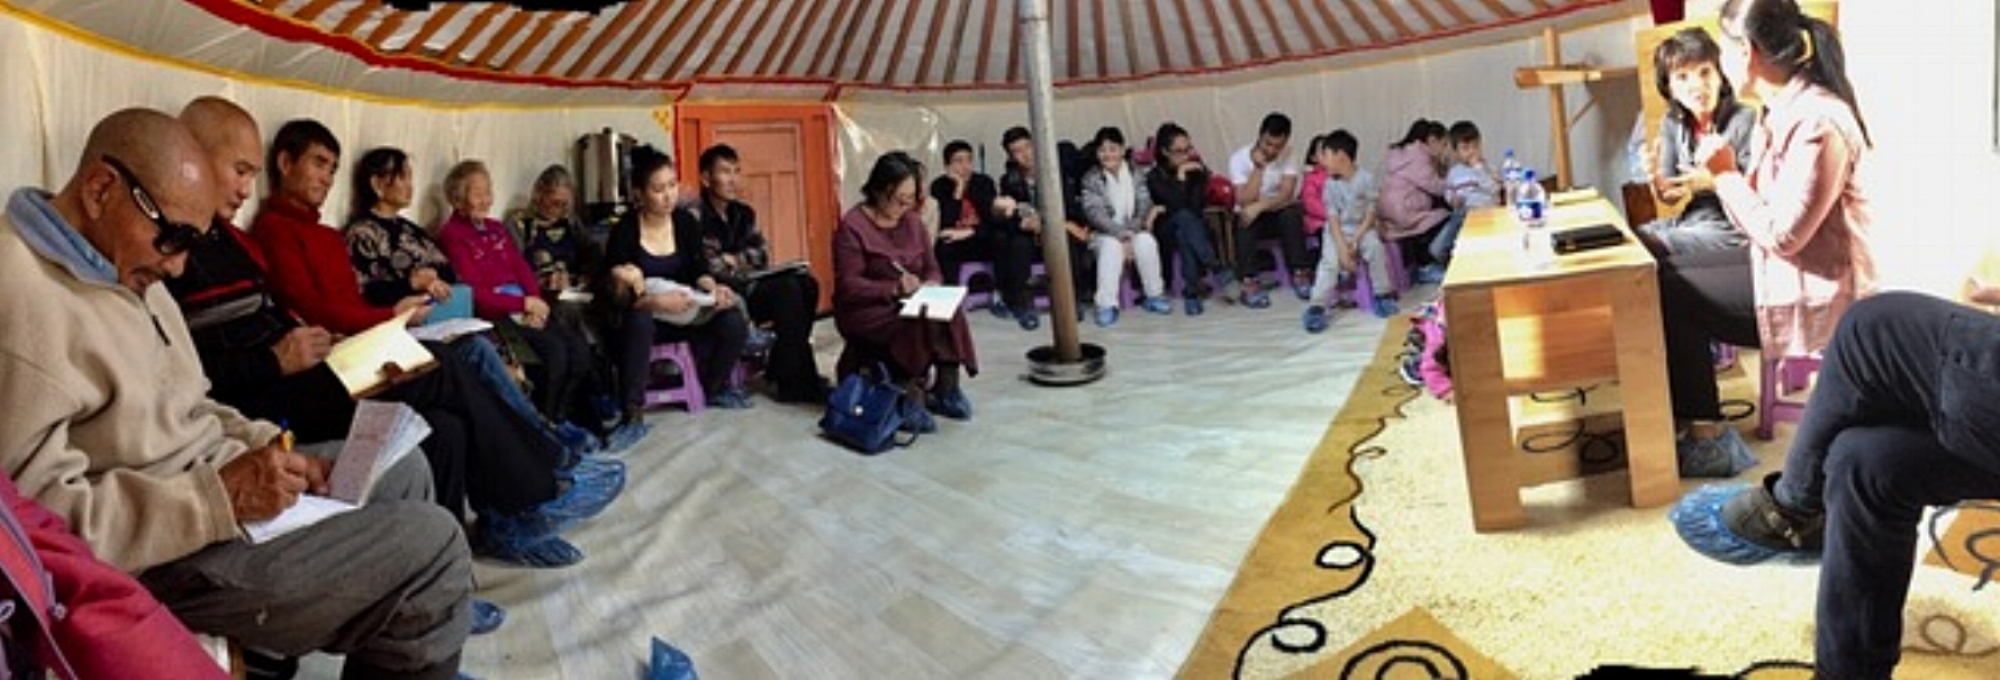 Mongolia--panorama of church people in ger.jpeg